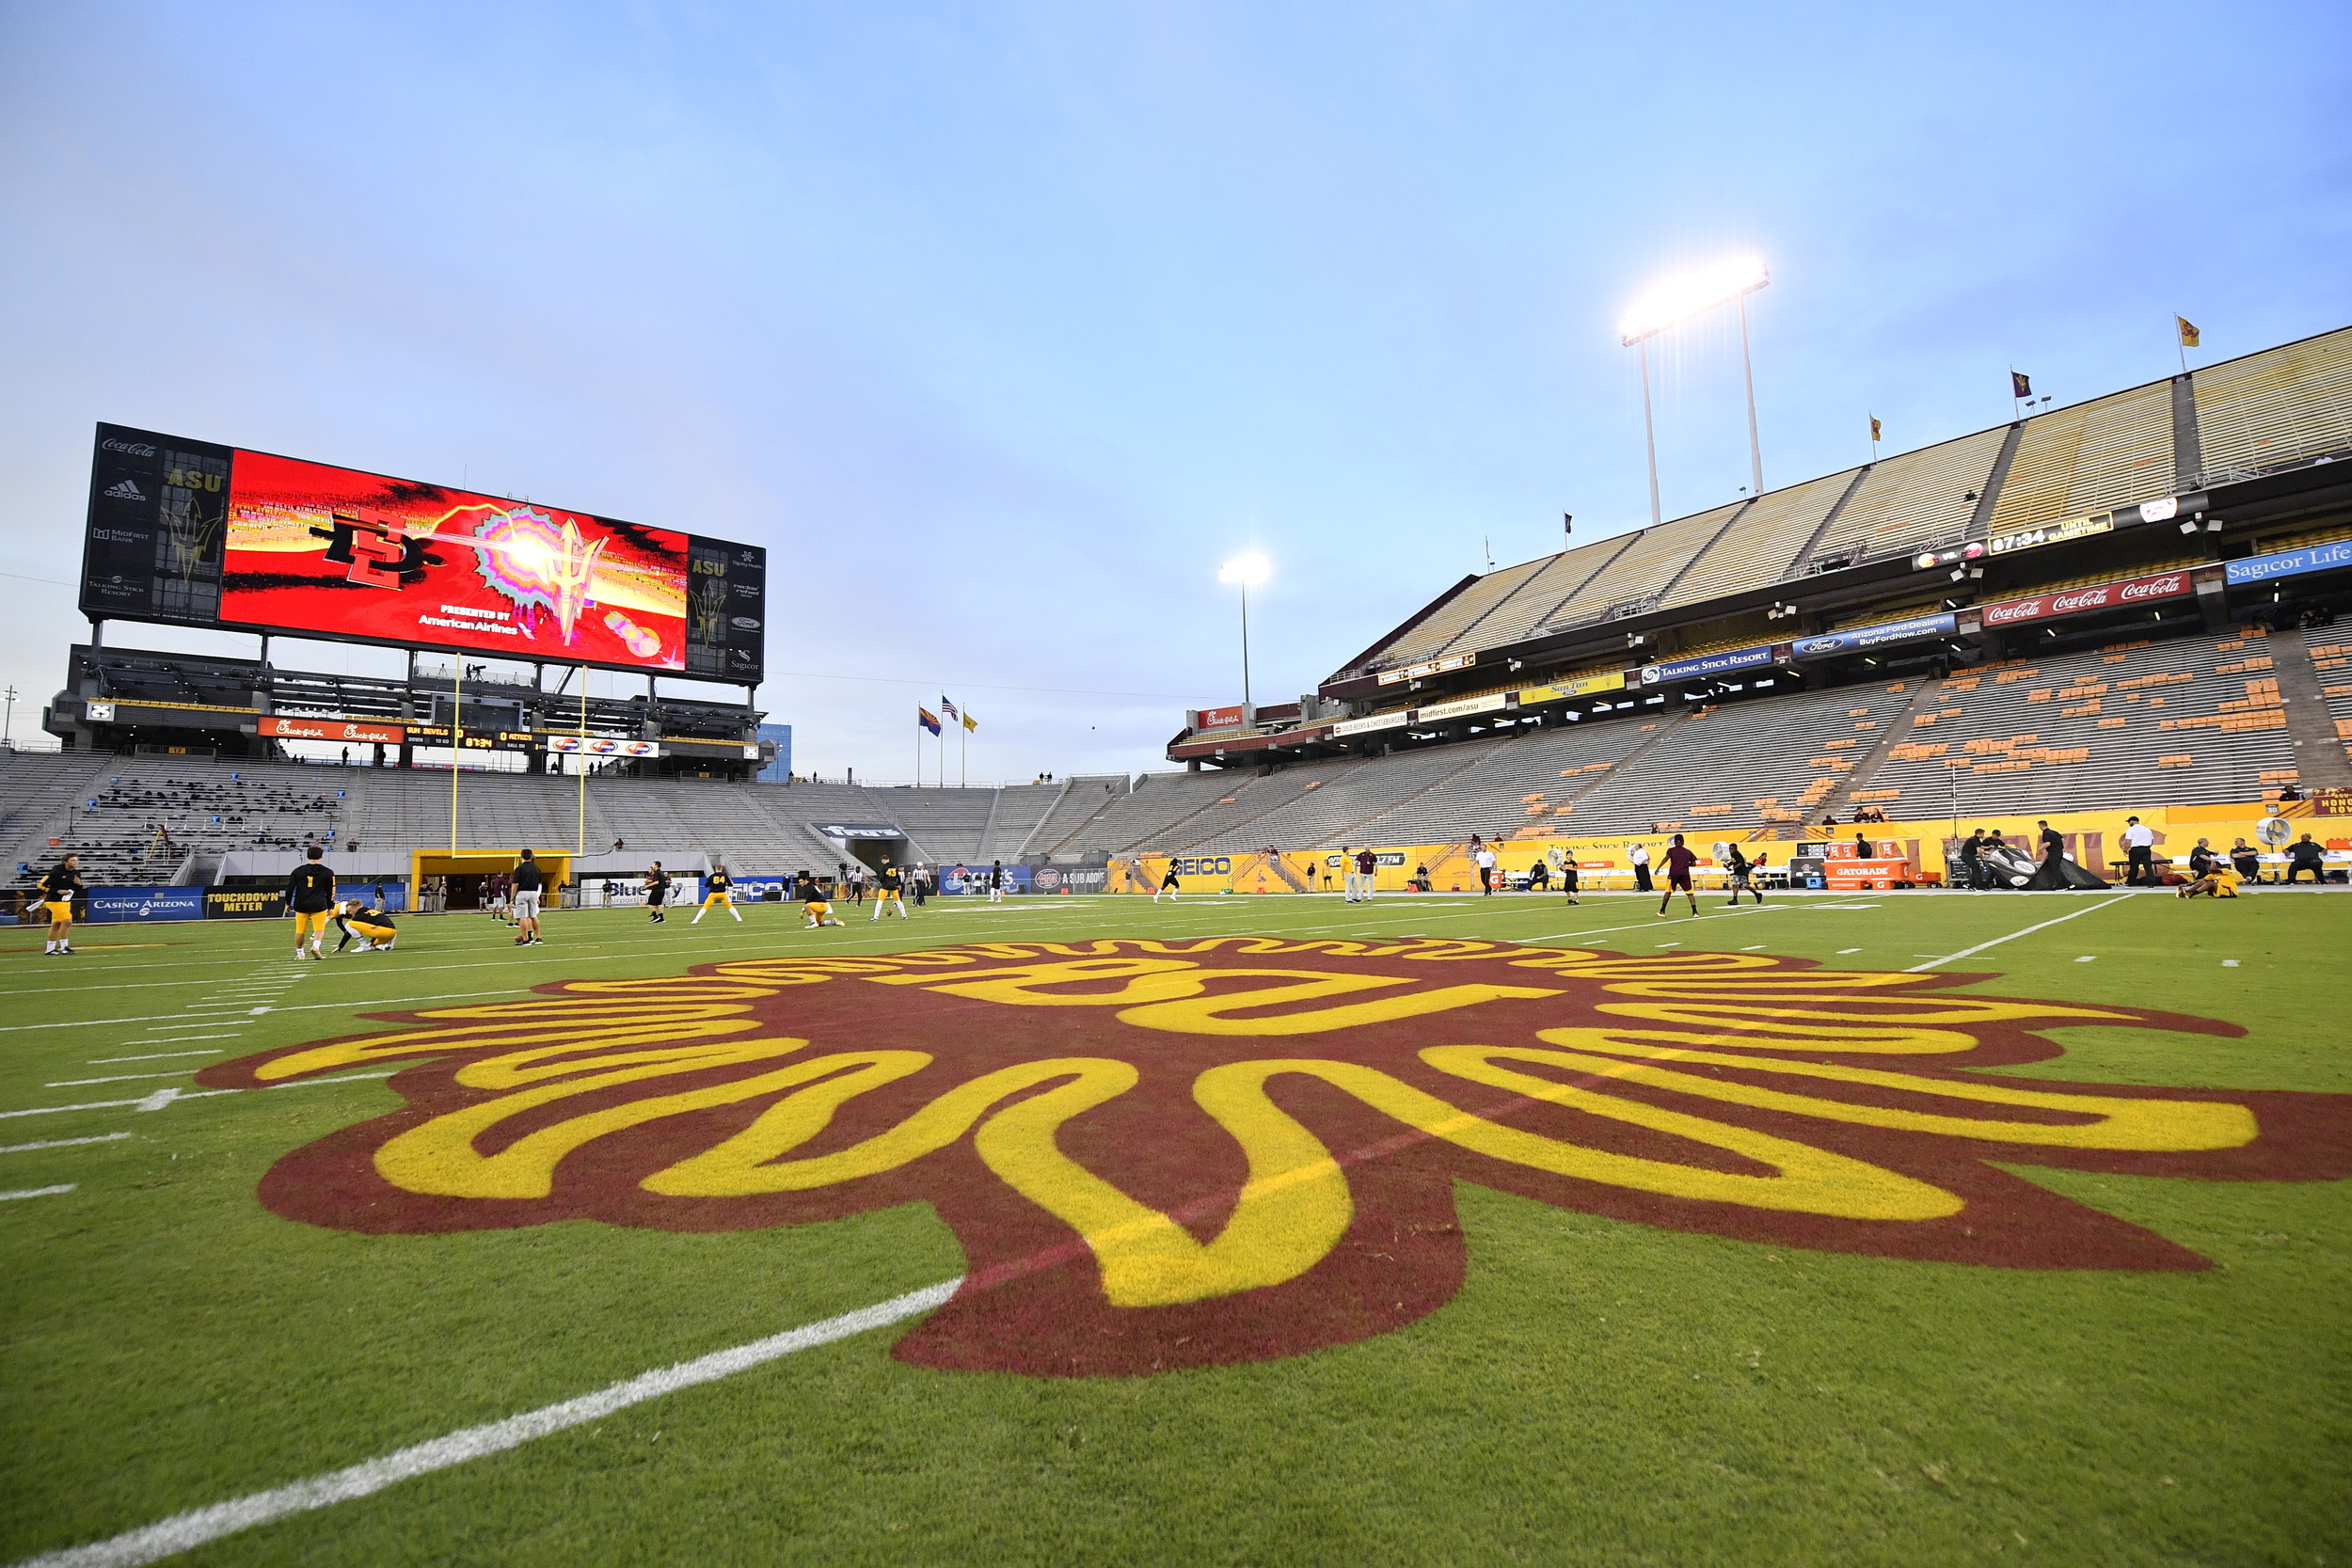 Arizona State University partners with ANC on new video display